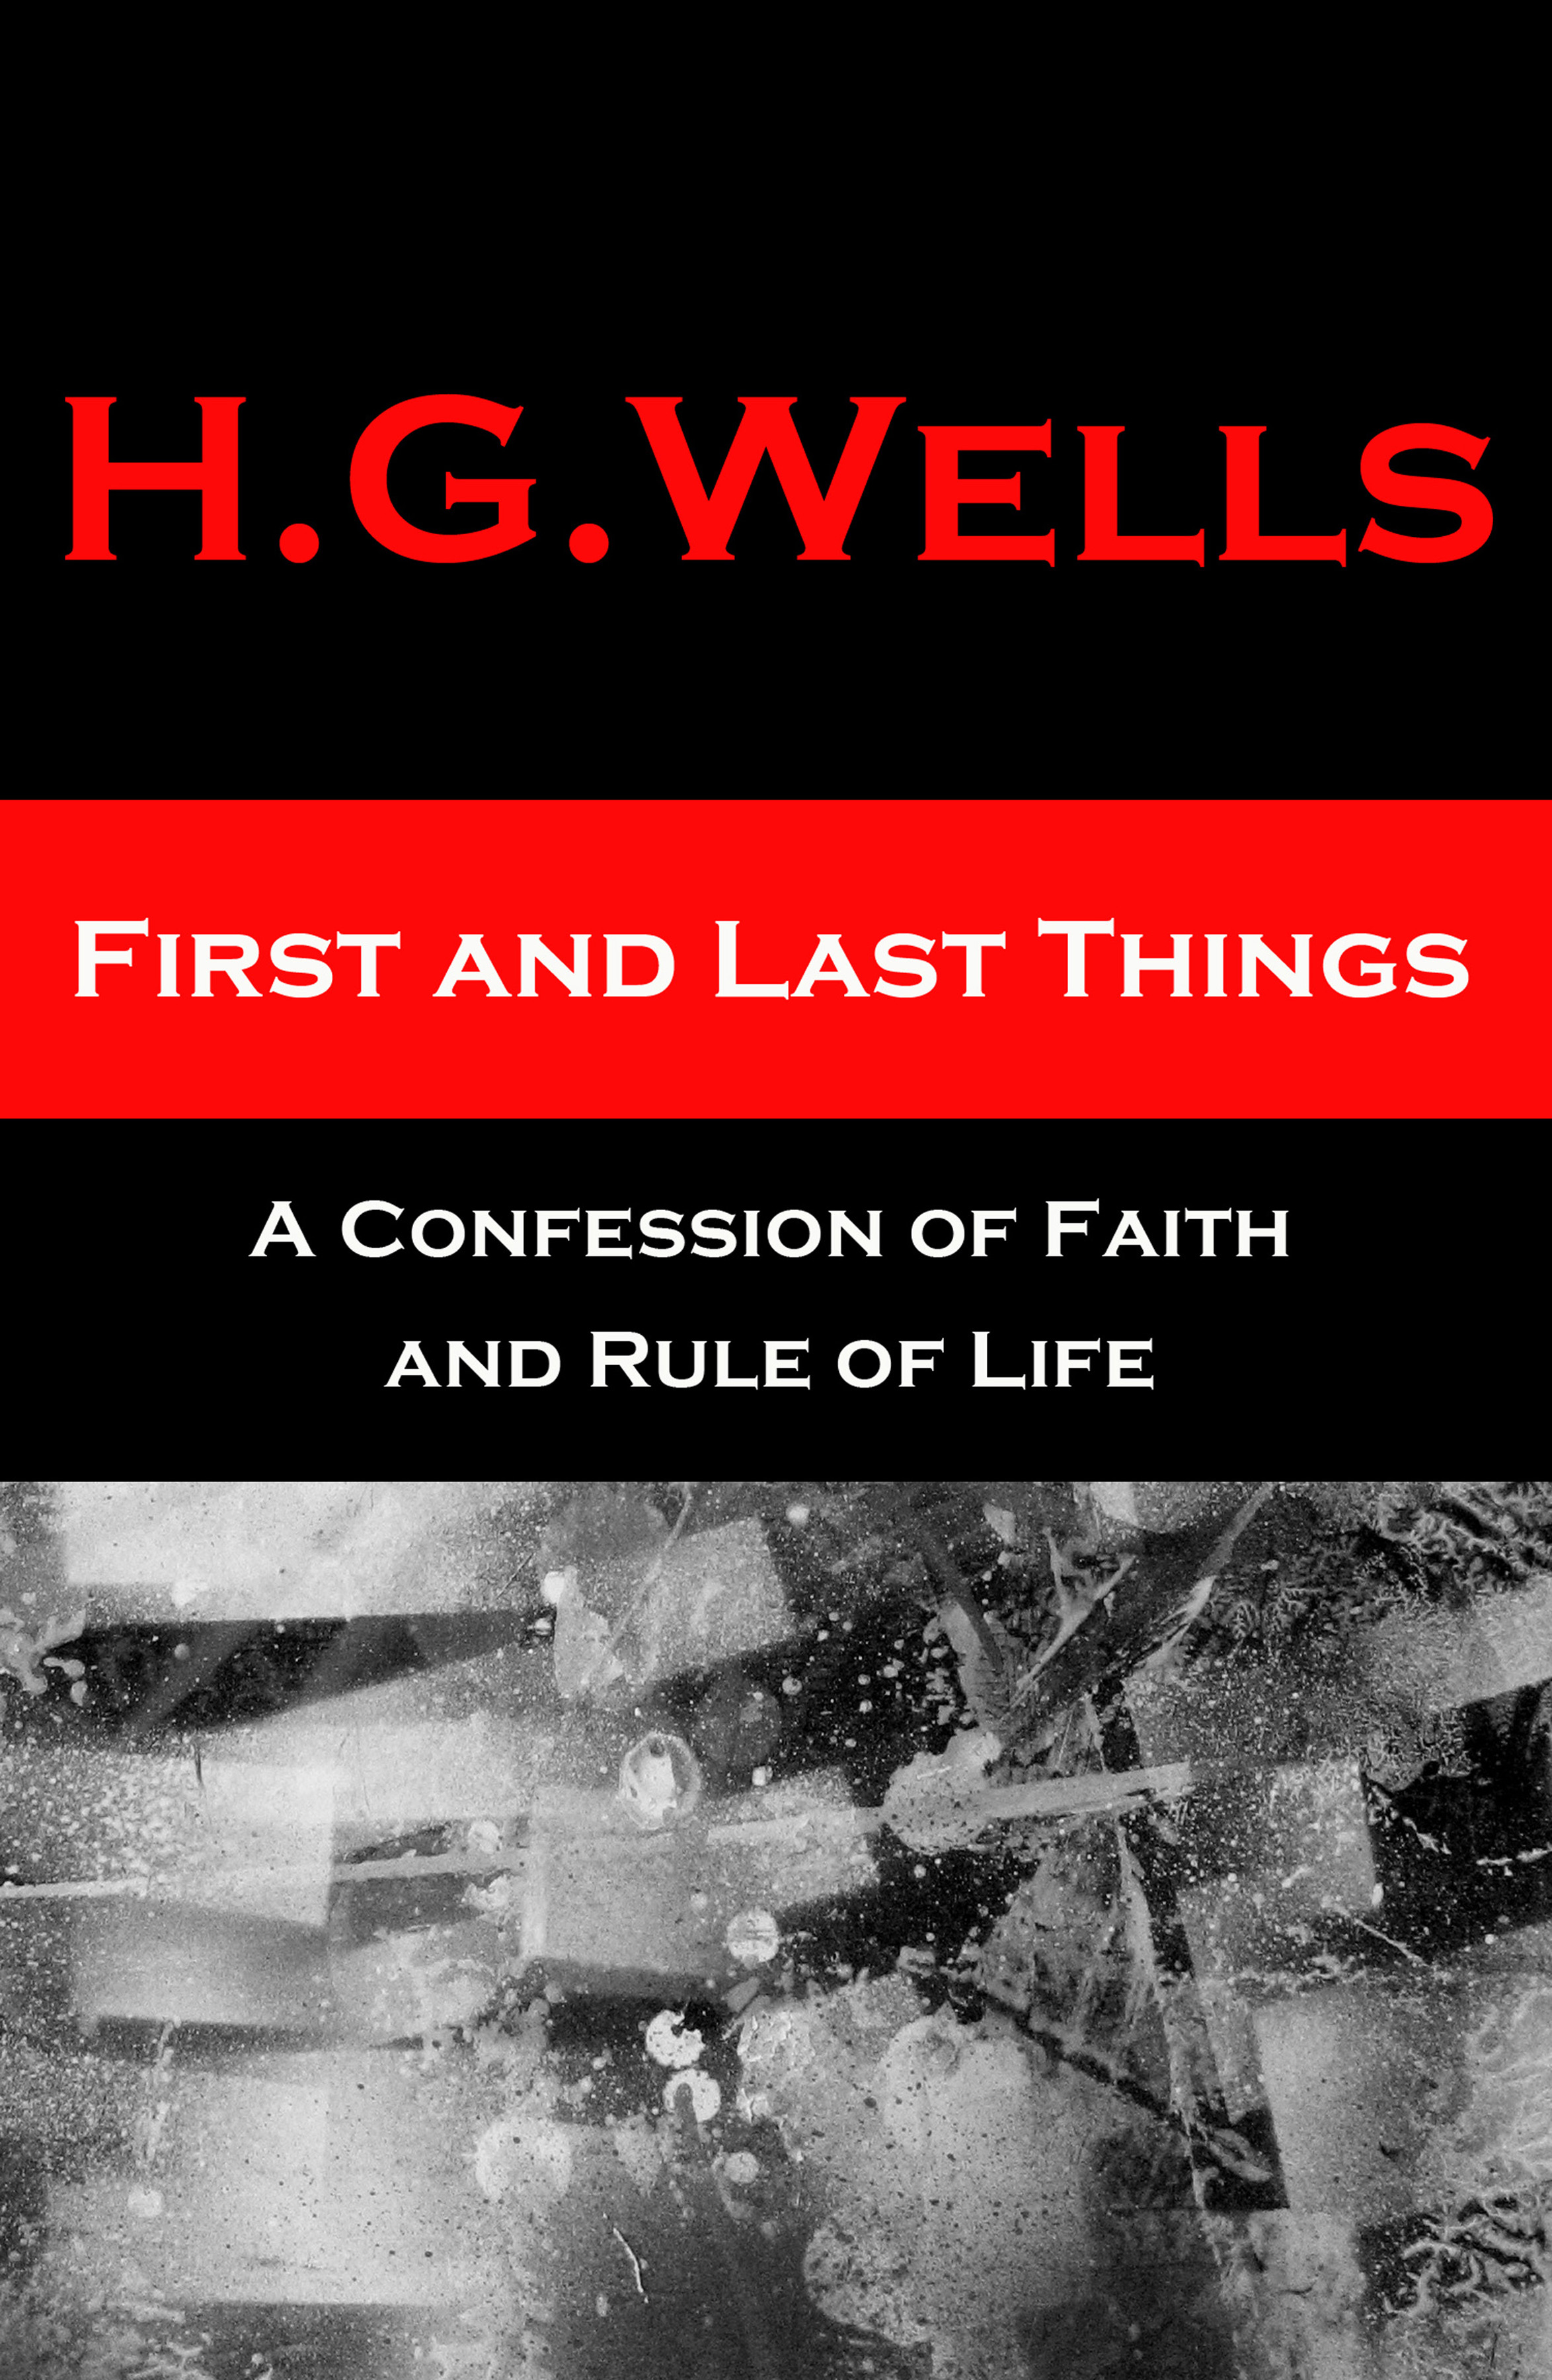 H. G. Wells First and Last Things - A Confession of Faith and Rule of Life g h federlein sunset and evening bells